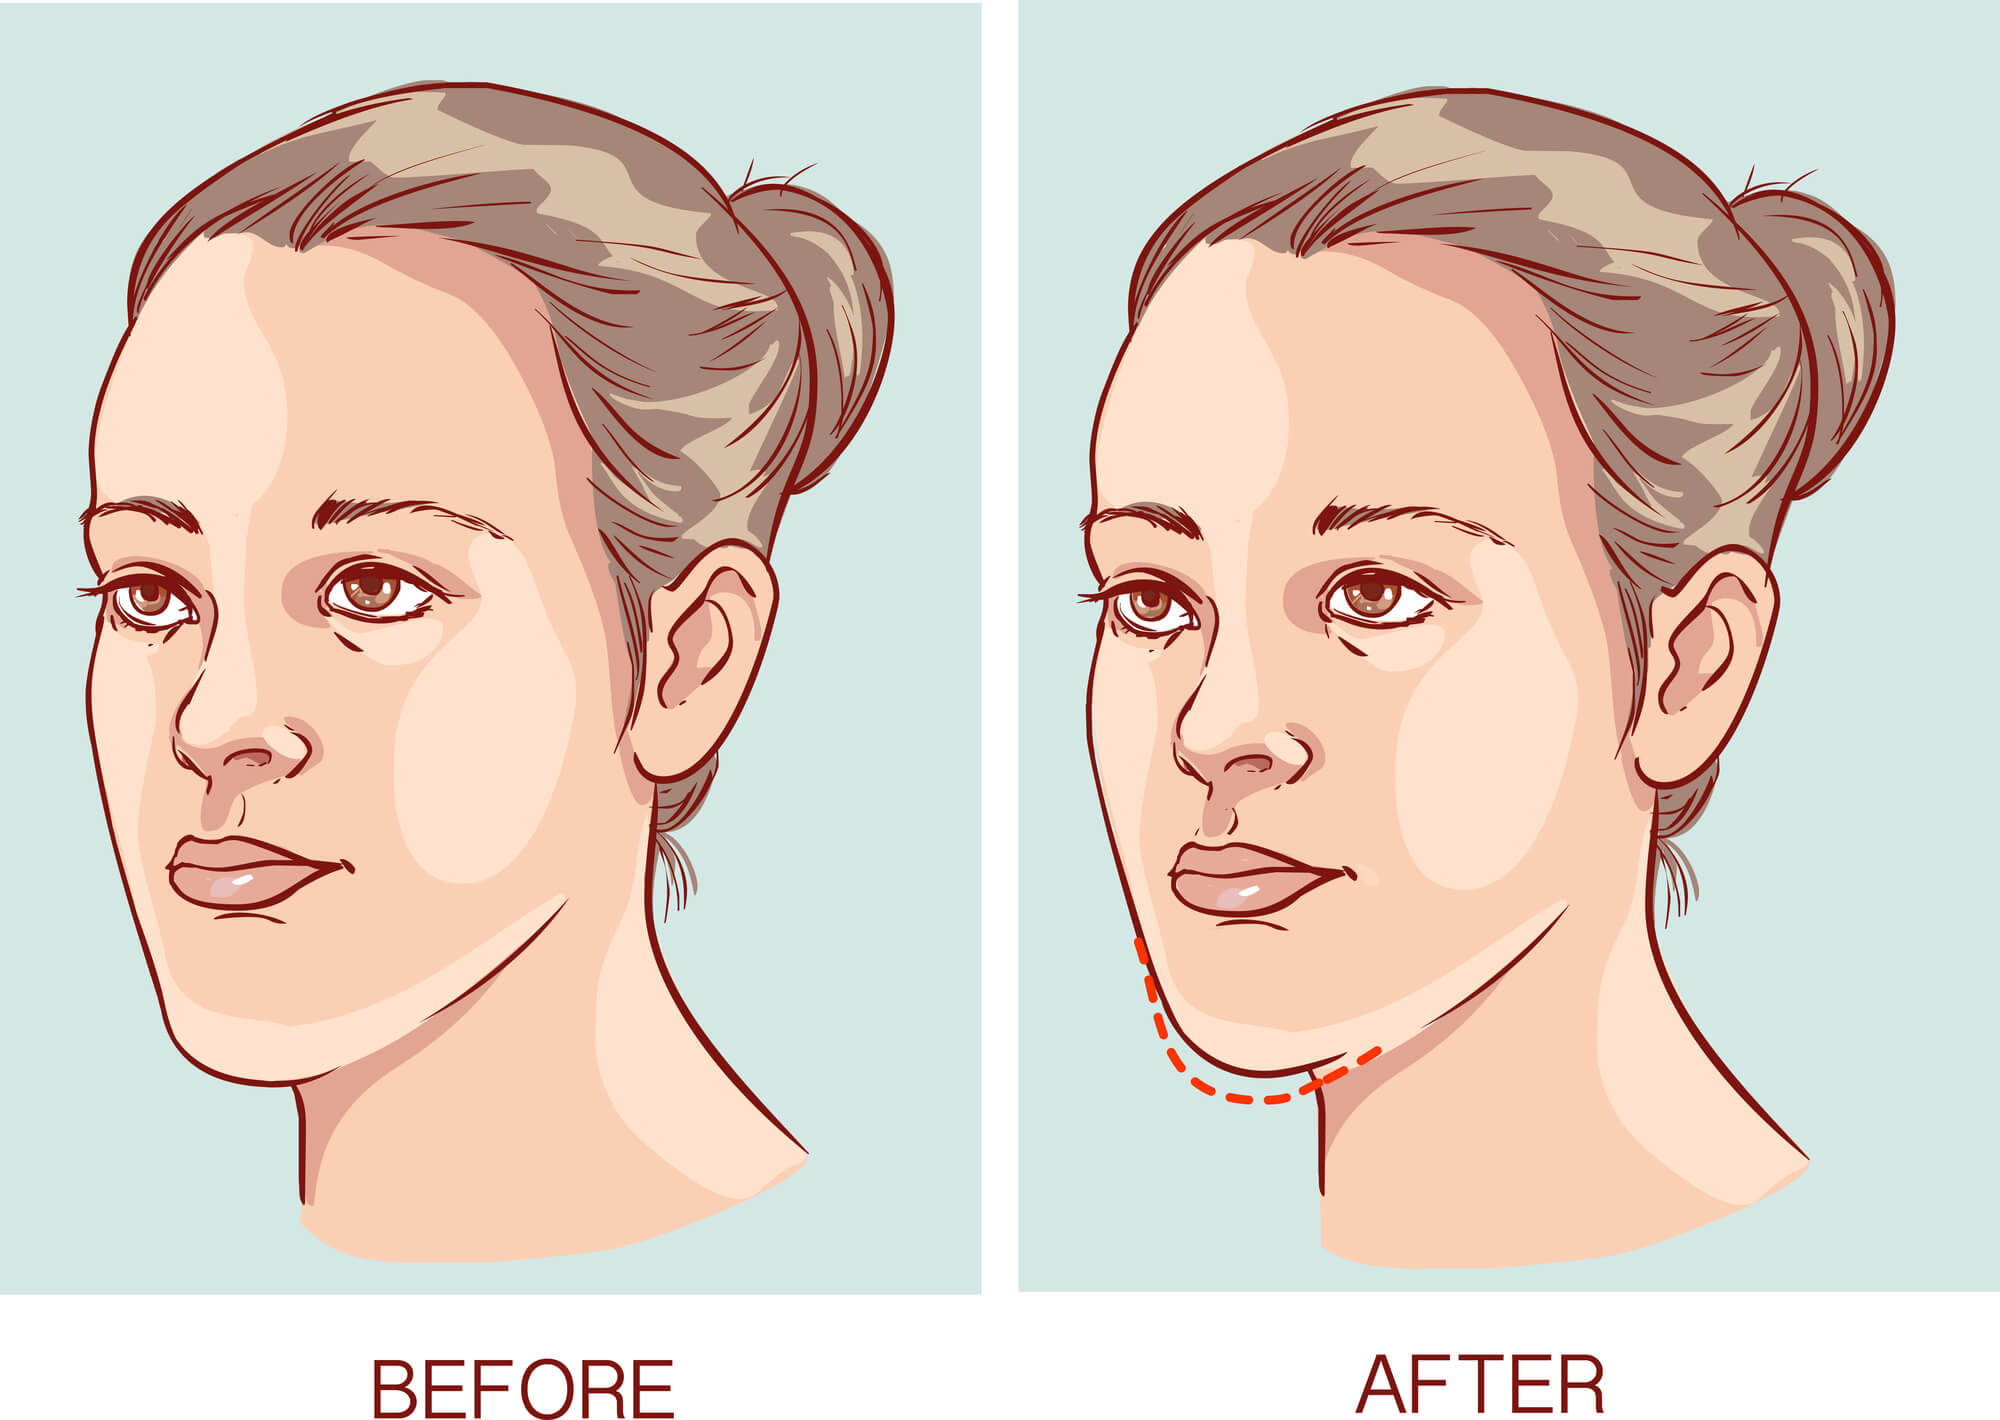 Where can I have Orthognathic Surgery Coral Springs?